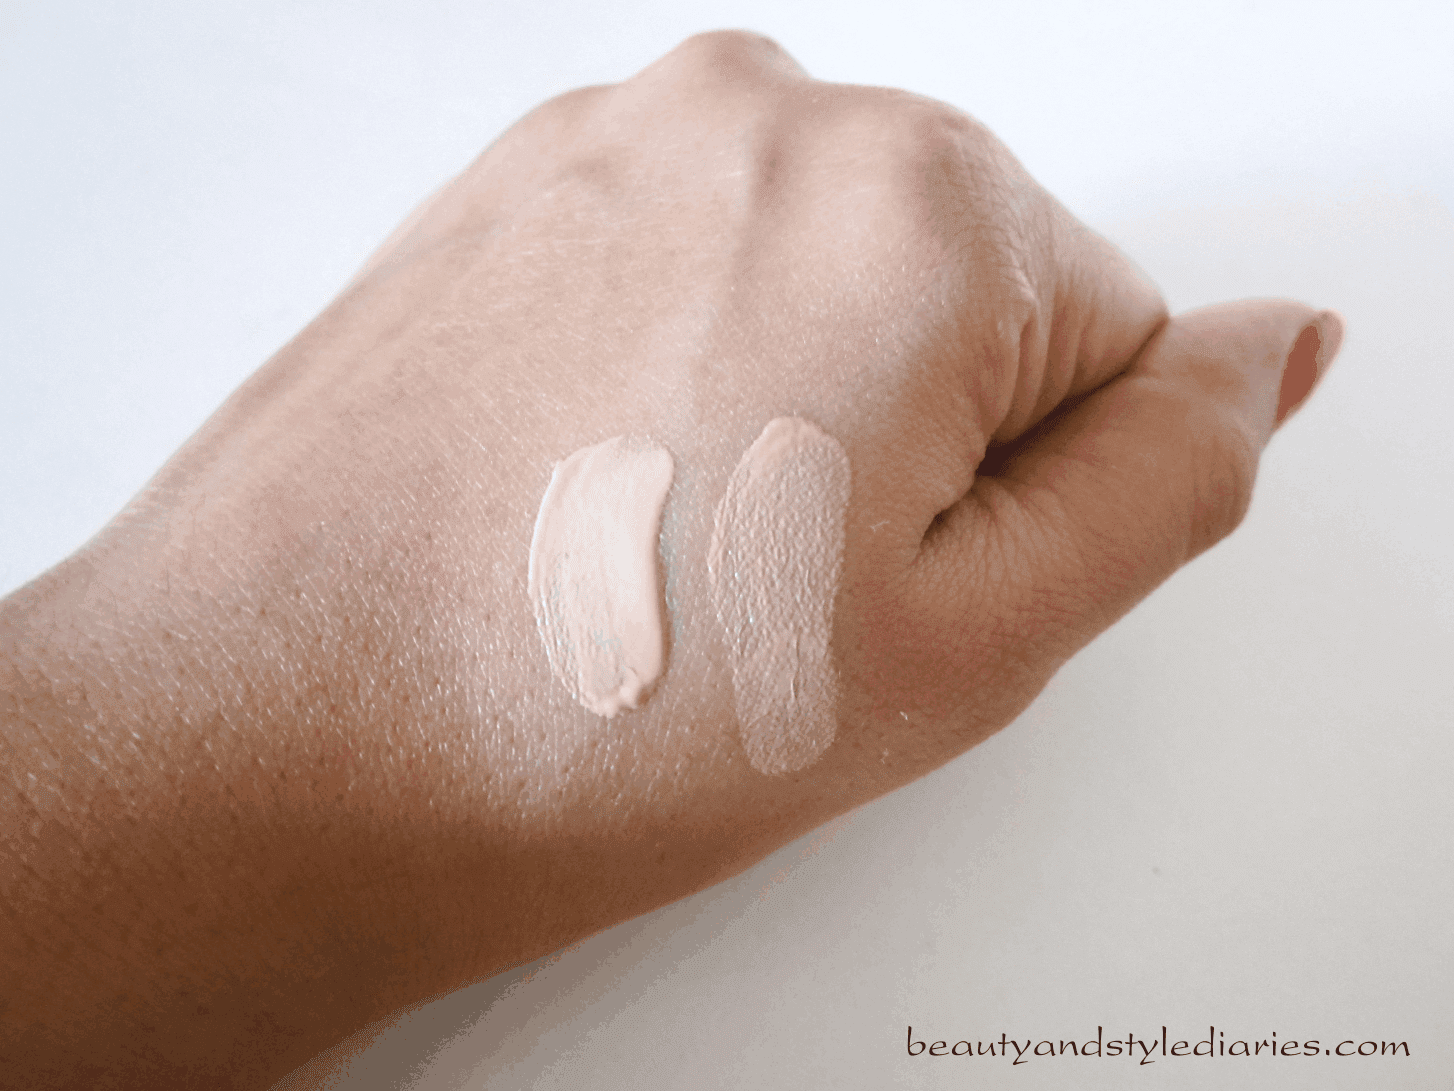 BB Cream - Actively Correcting and Beautifying with SPF 50 PA+++ by Kiehls #18